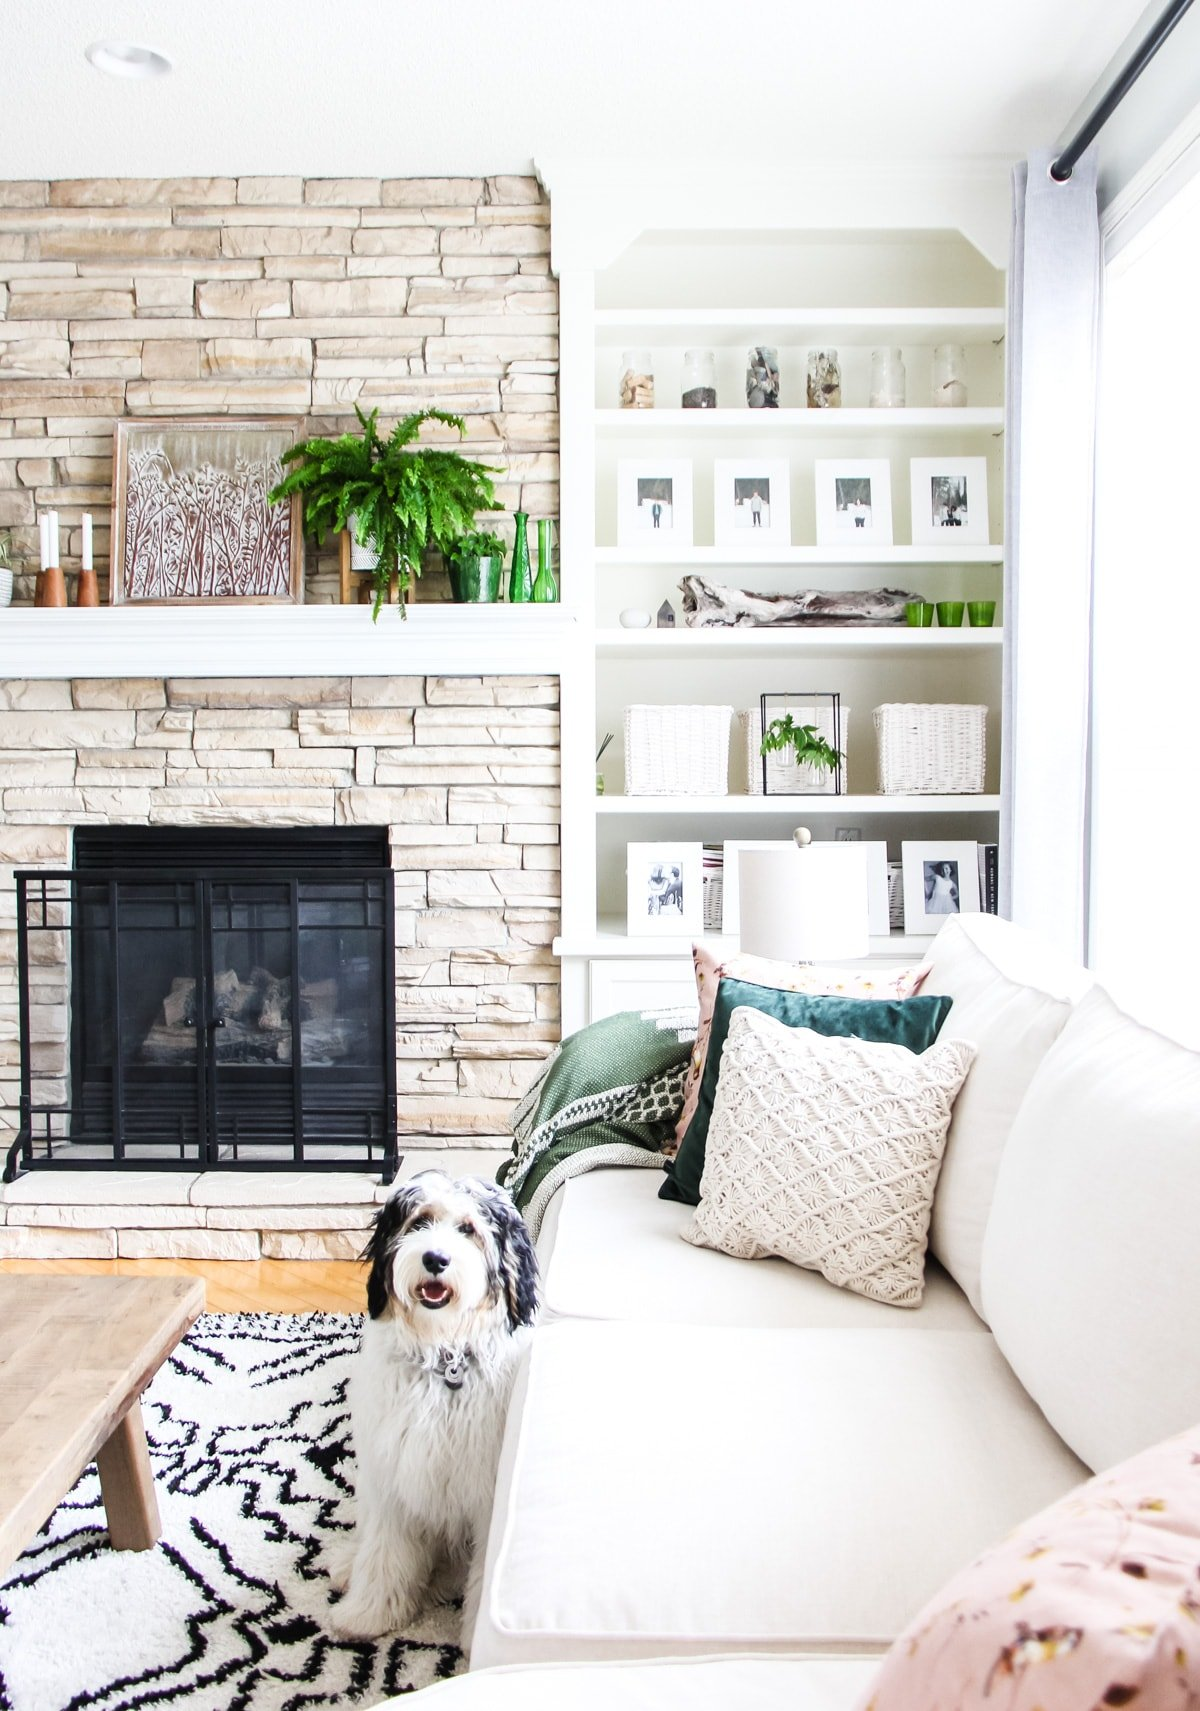 a front half view of a light stone fireplace decorated with plants, candles and art. next to it are white built in shelves filled with white framed pictures, baskets and pops of green. in the foreground is a cream coloured couch with pillows. and THE CUTEST black and white puppy